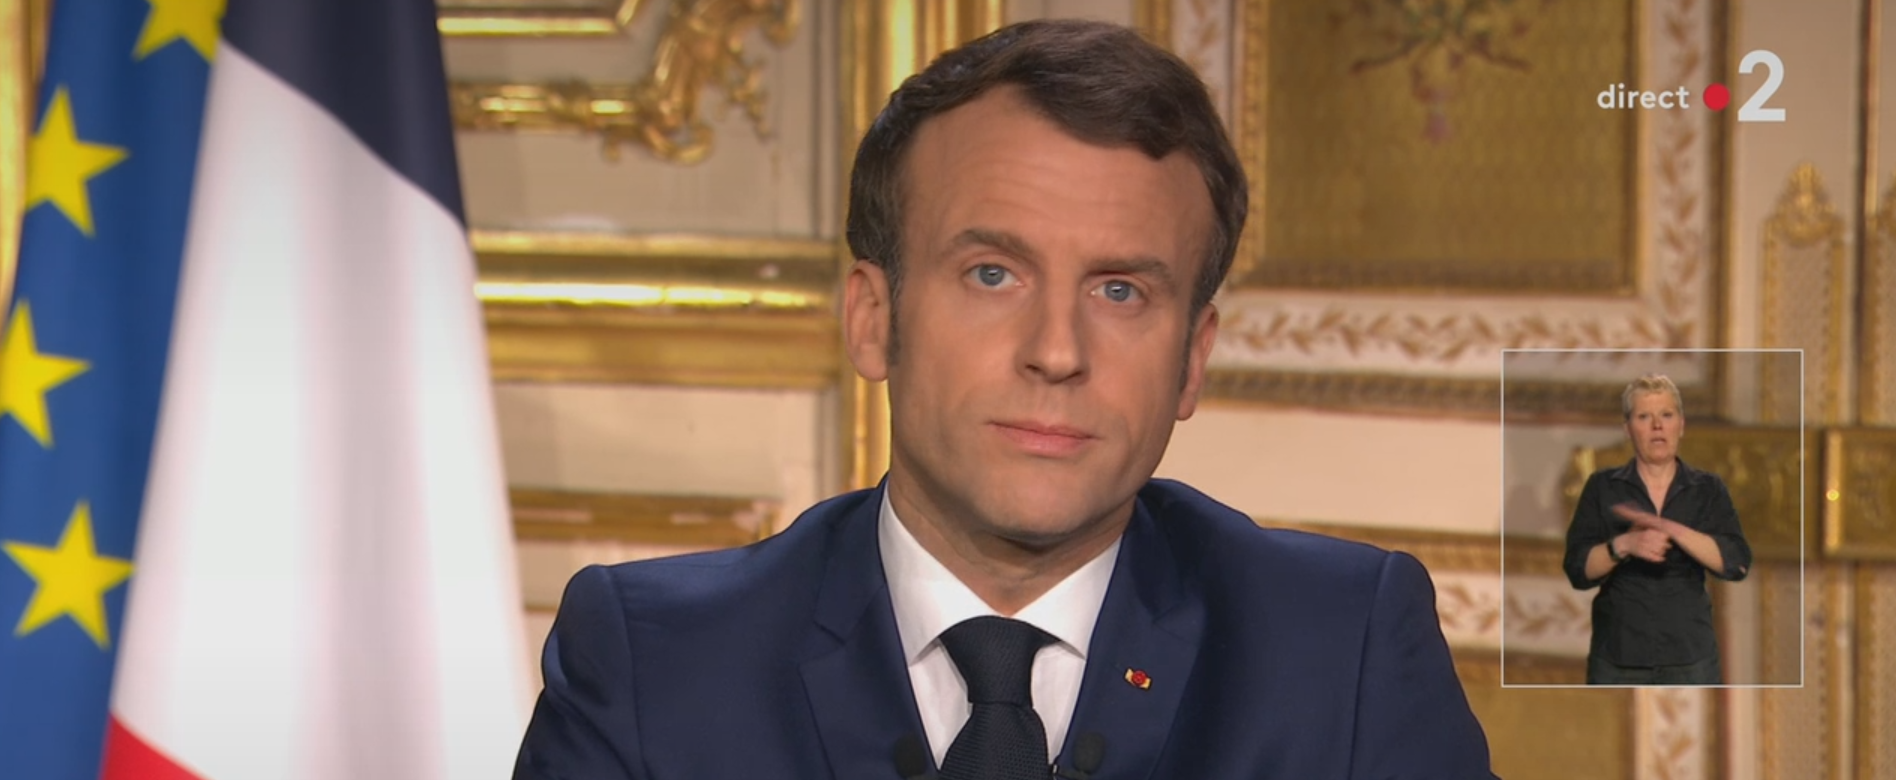 French president Emmanuel Macron during his speech March 15 where he annouced further measures to combat the coronavirus